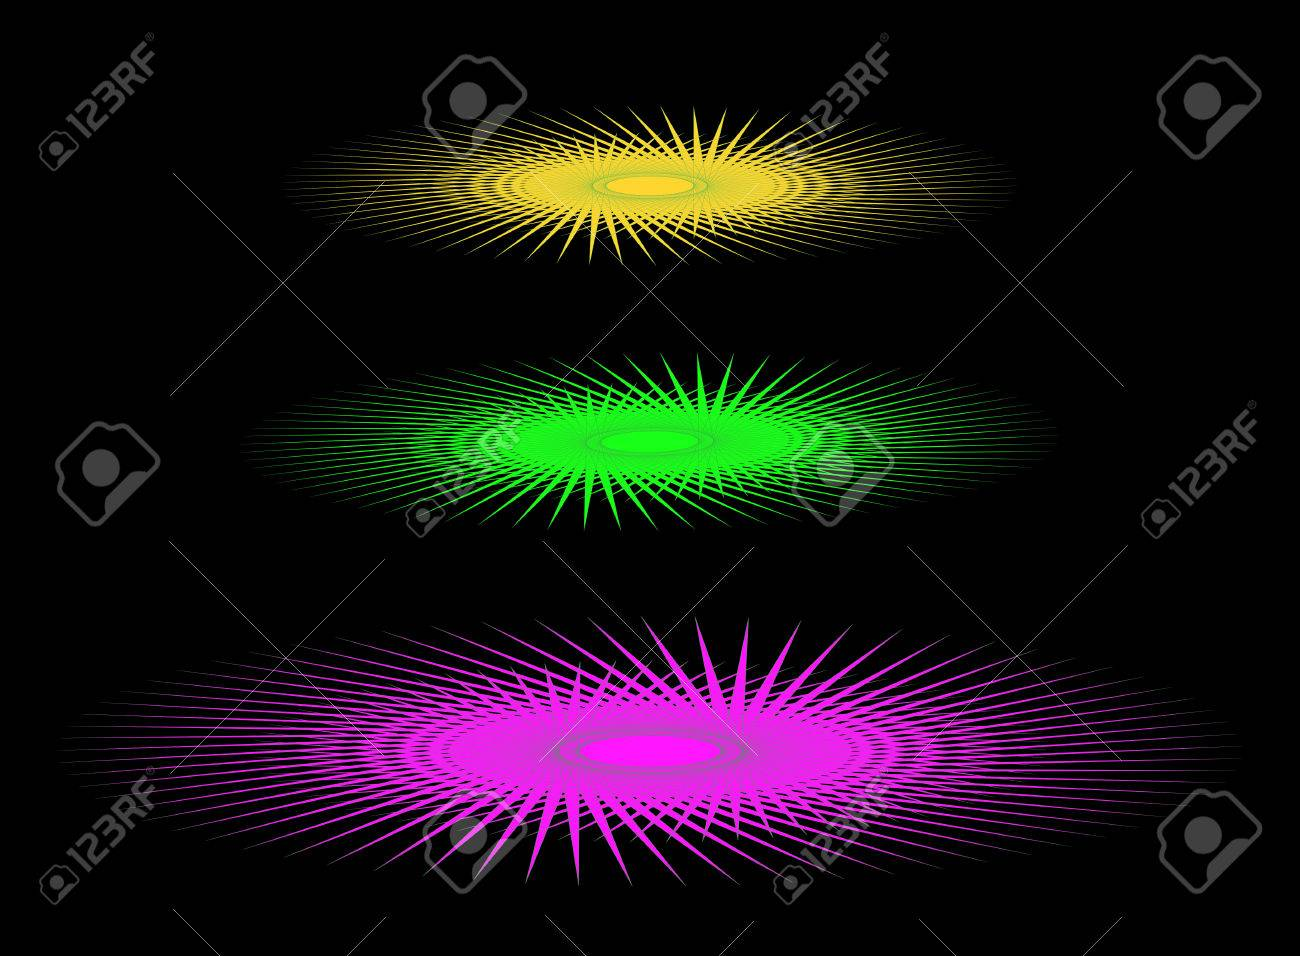 Abstract Three Colored UFO On A Black Background Stock Photo ... for Ufo Black Background  1lp1fsj